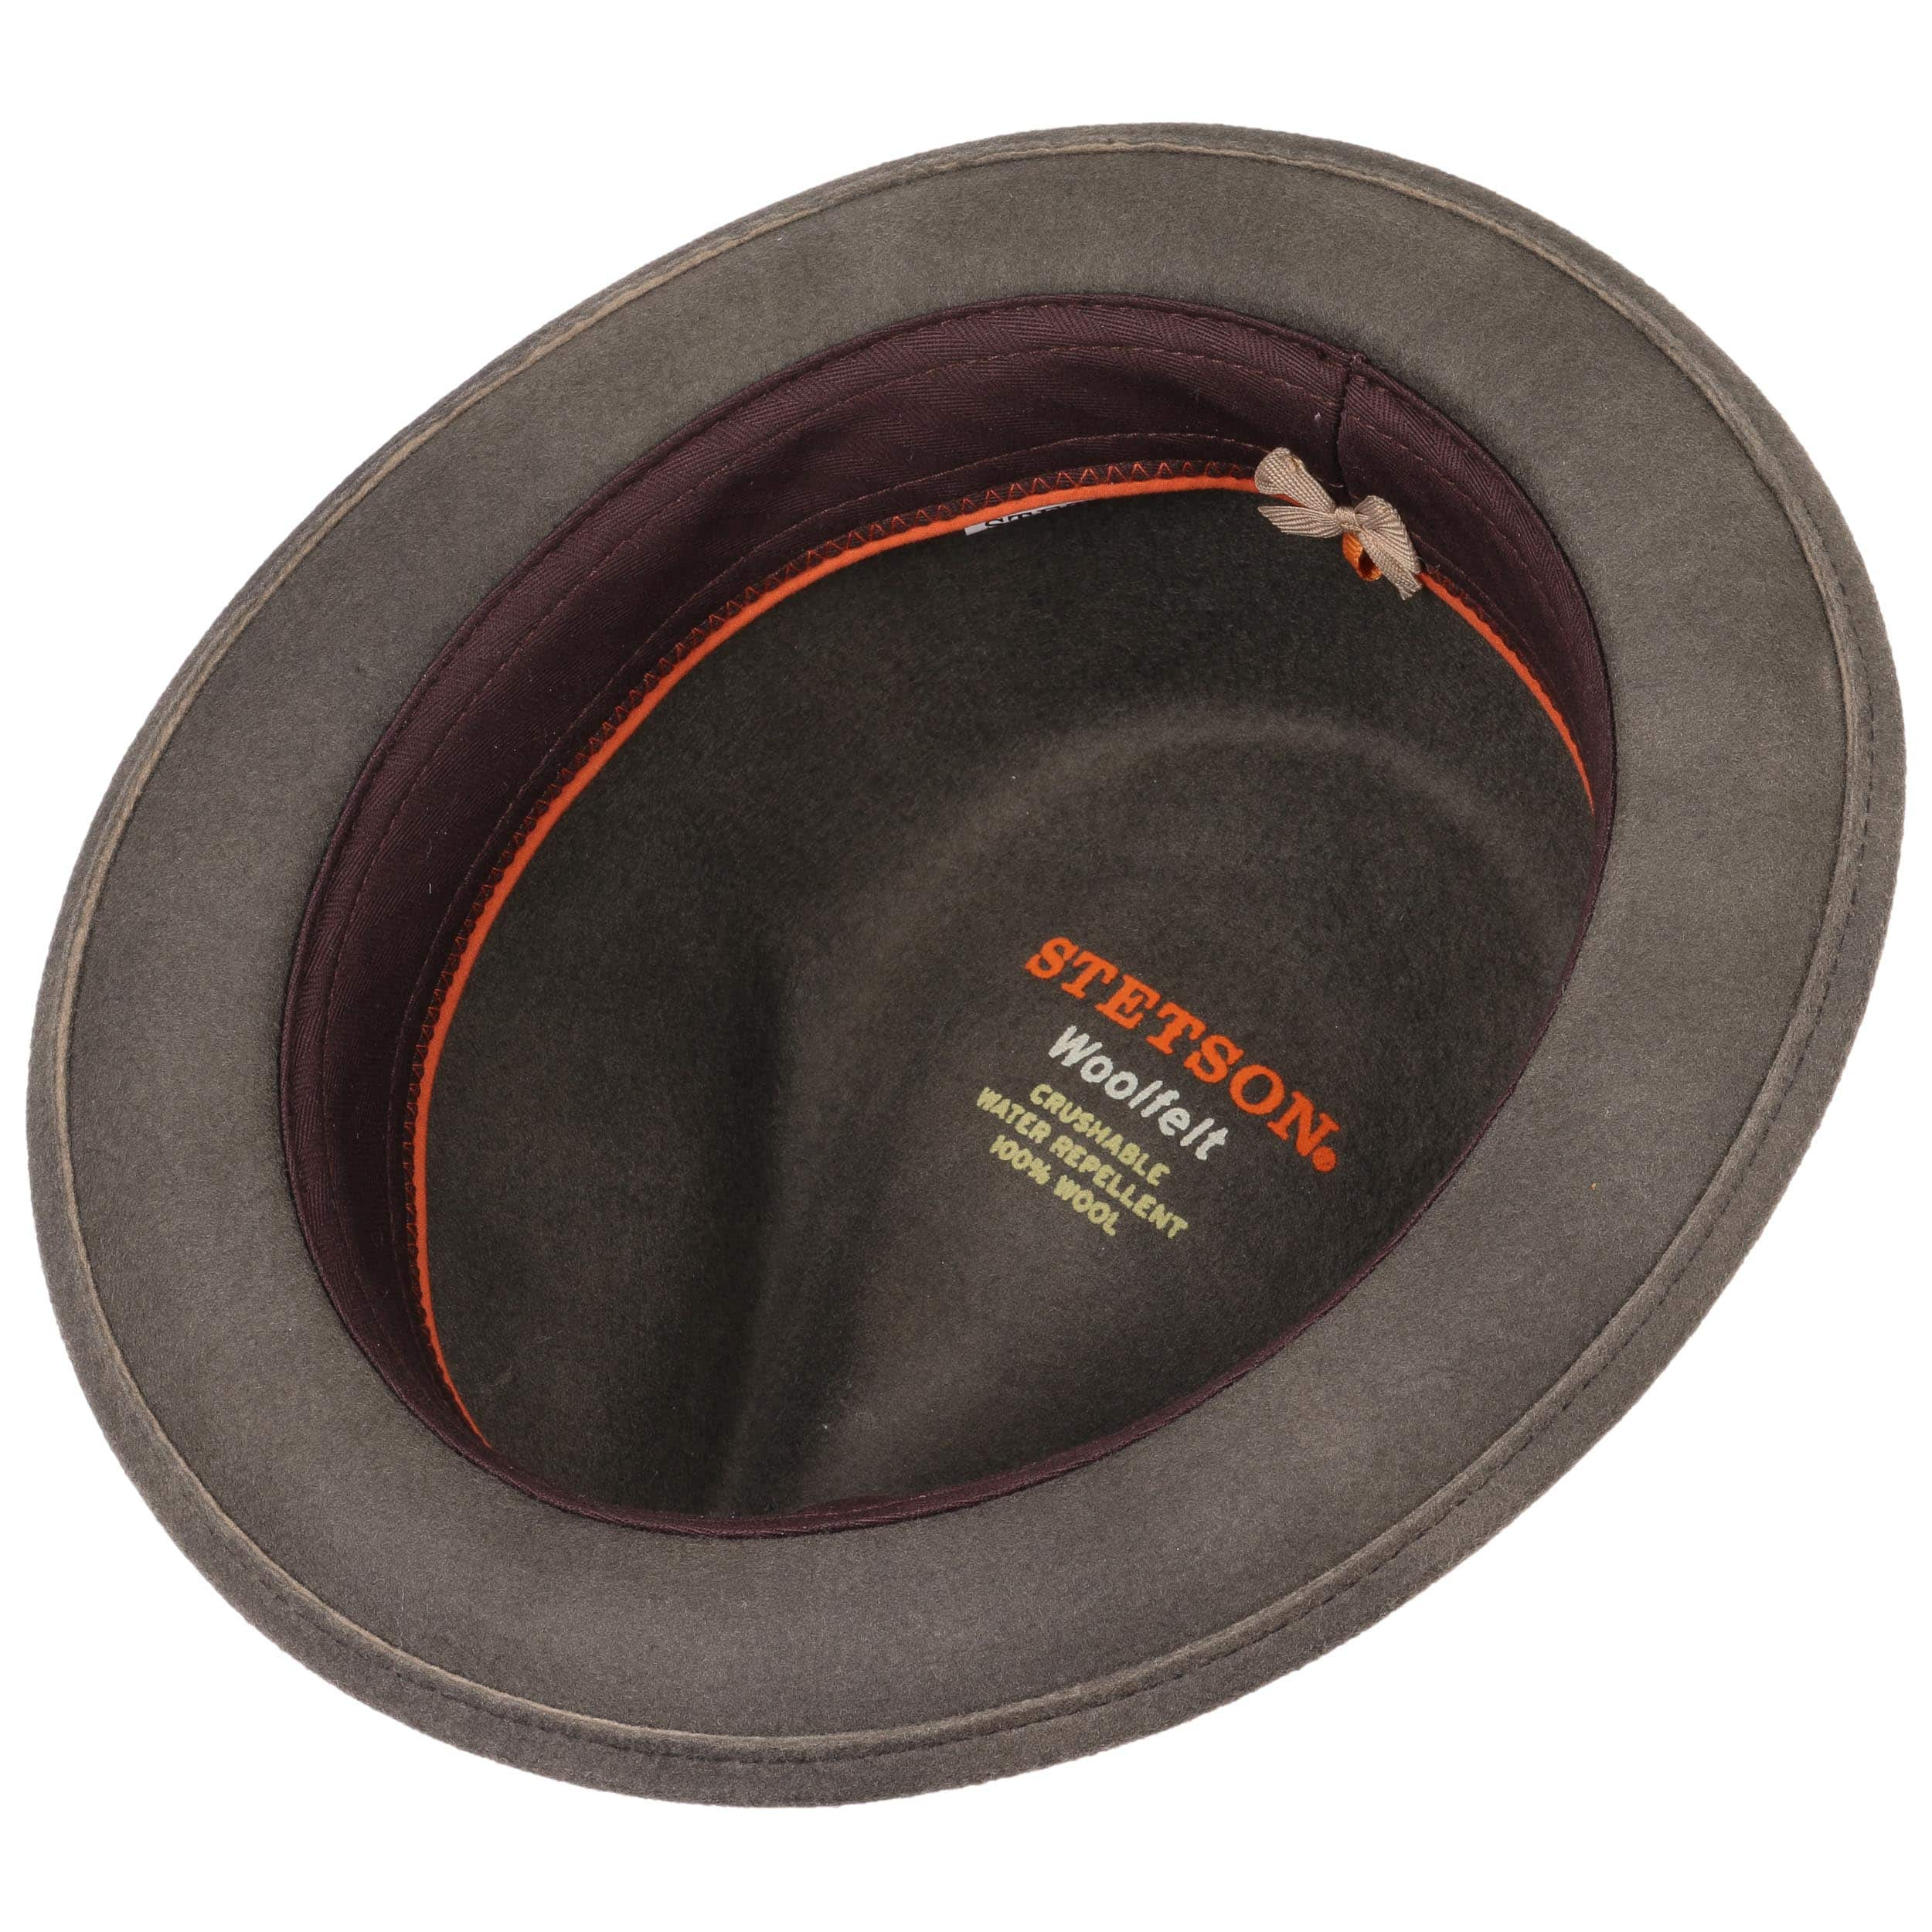 e978852277e ... Washed Look Fedora Felt Hat by Stetson - grey 2 ...